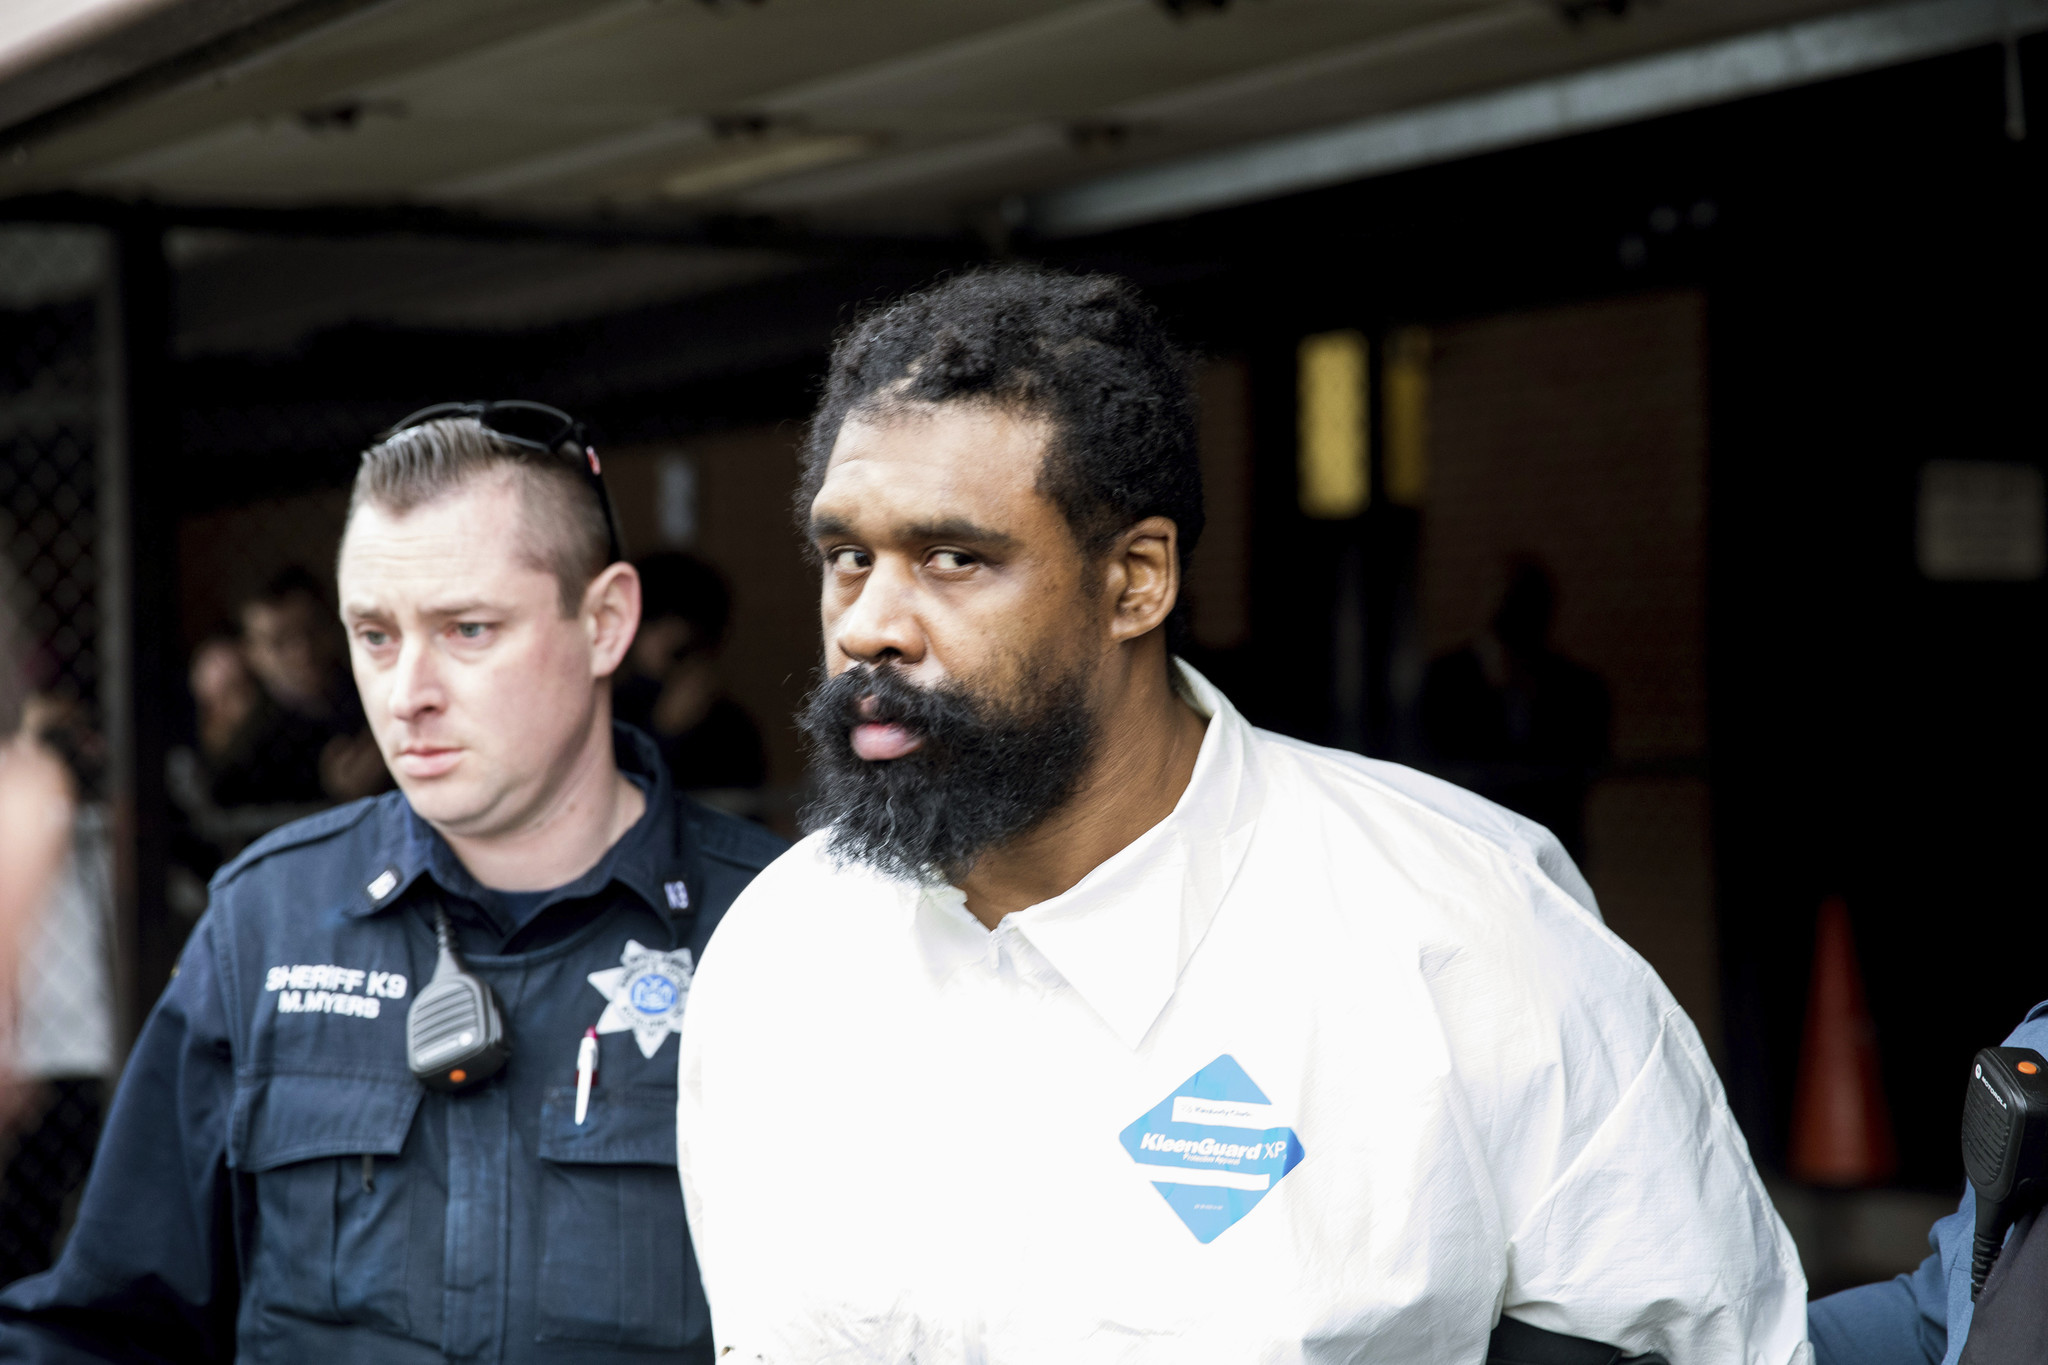 Psychiatrist found Monsey stabber mentally unfit for trial, lawyer says